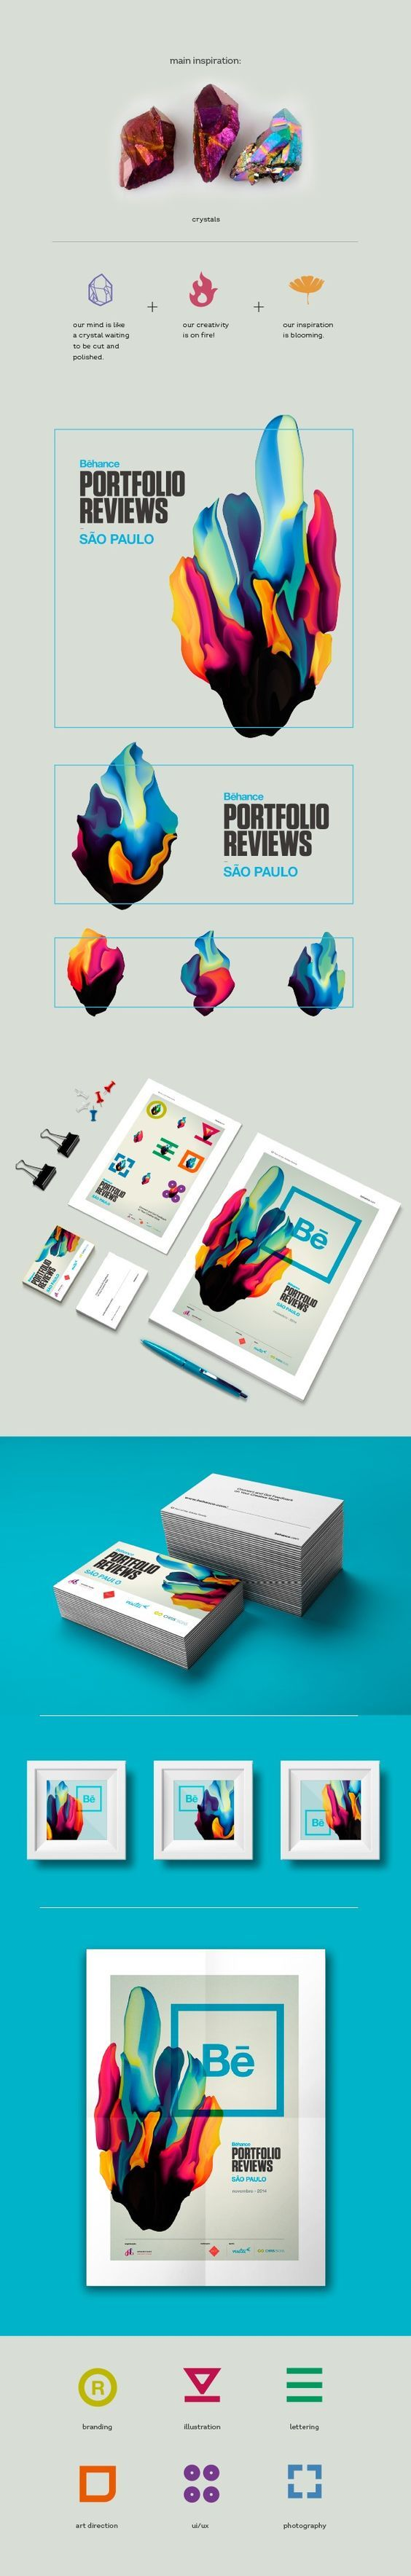 Graphic Design // Logos // Brand / Behance Portfolio Reviews SP #6 on Behance: